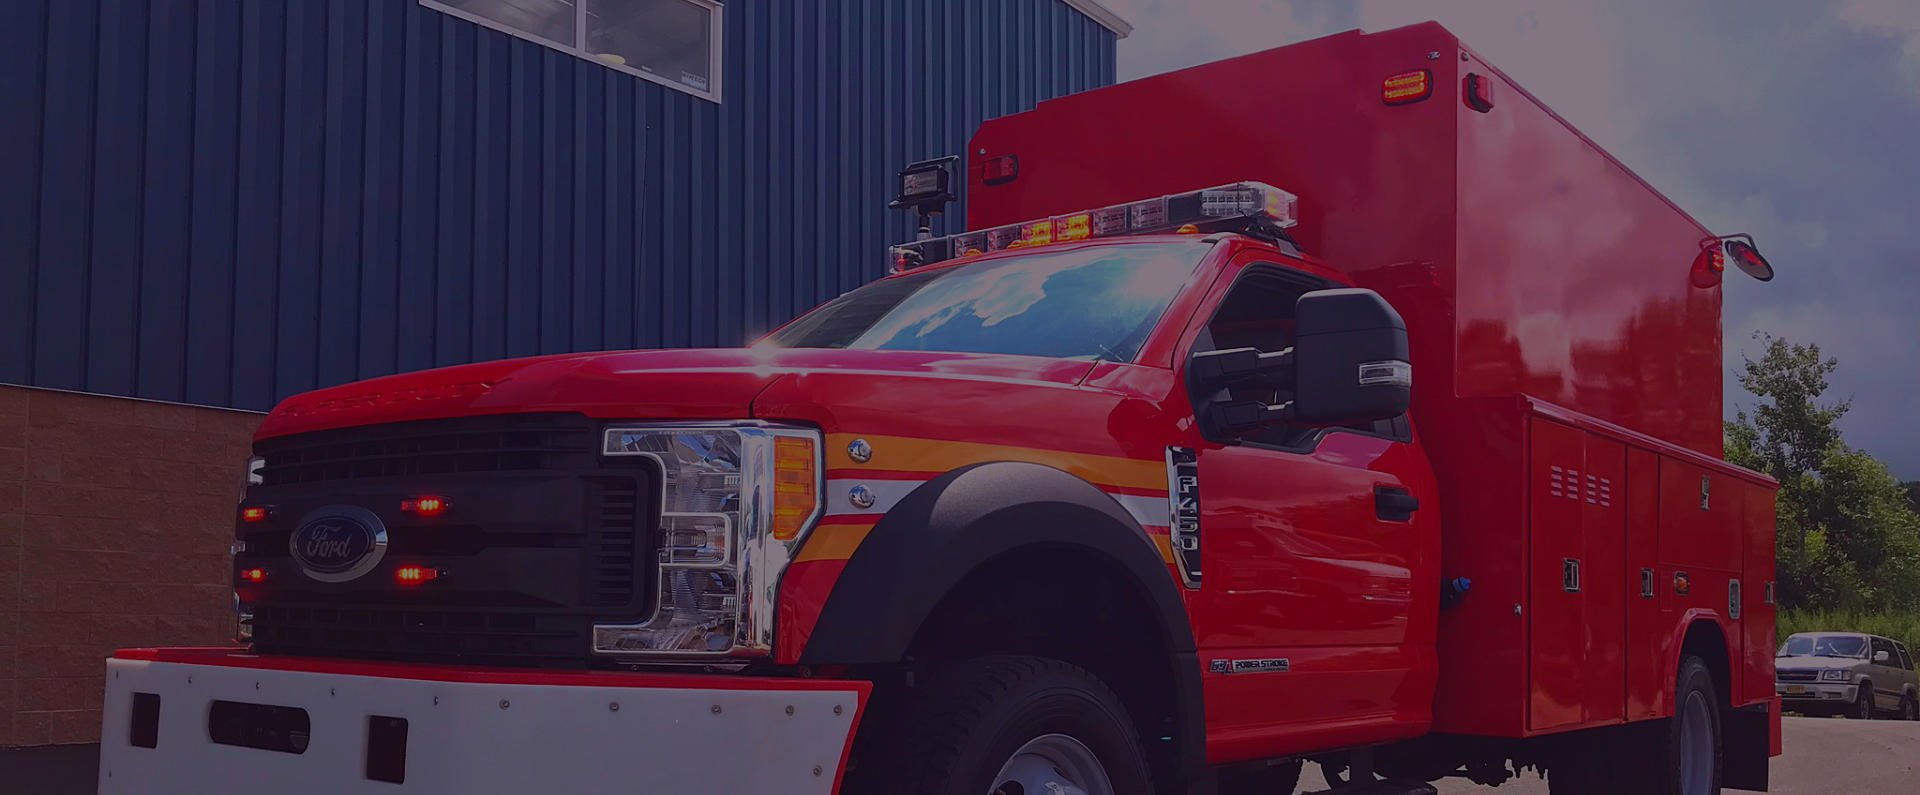 First Priority Emergency Vehicles Custom Utility Trucks Specialty Vehicles